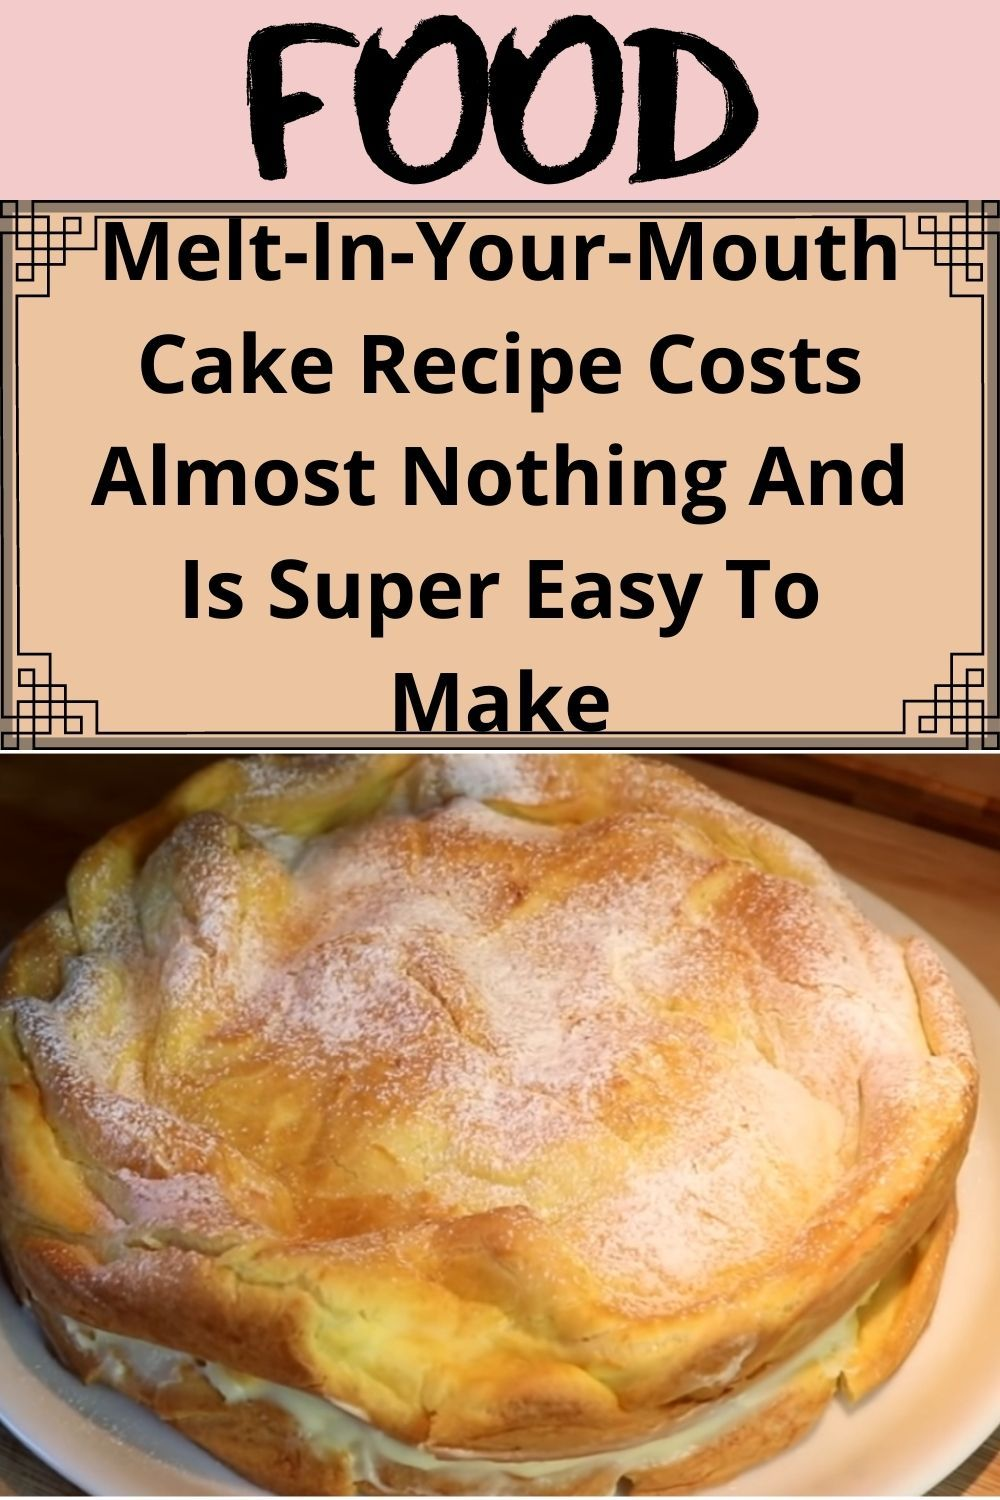 Melt-In-Your-Mouth Cake Recipe Costs Almost Nothin